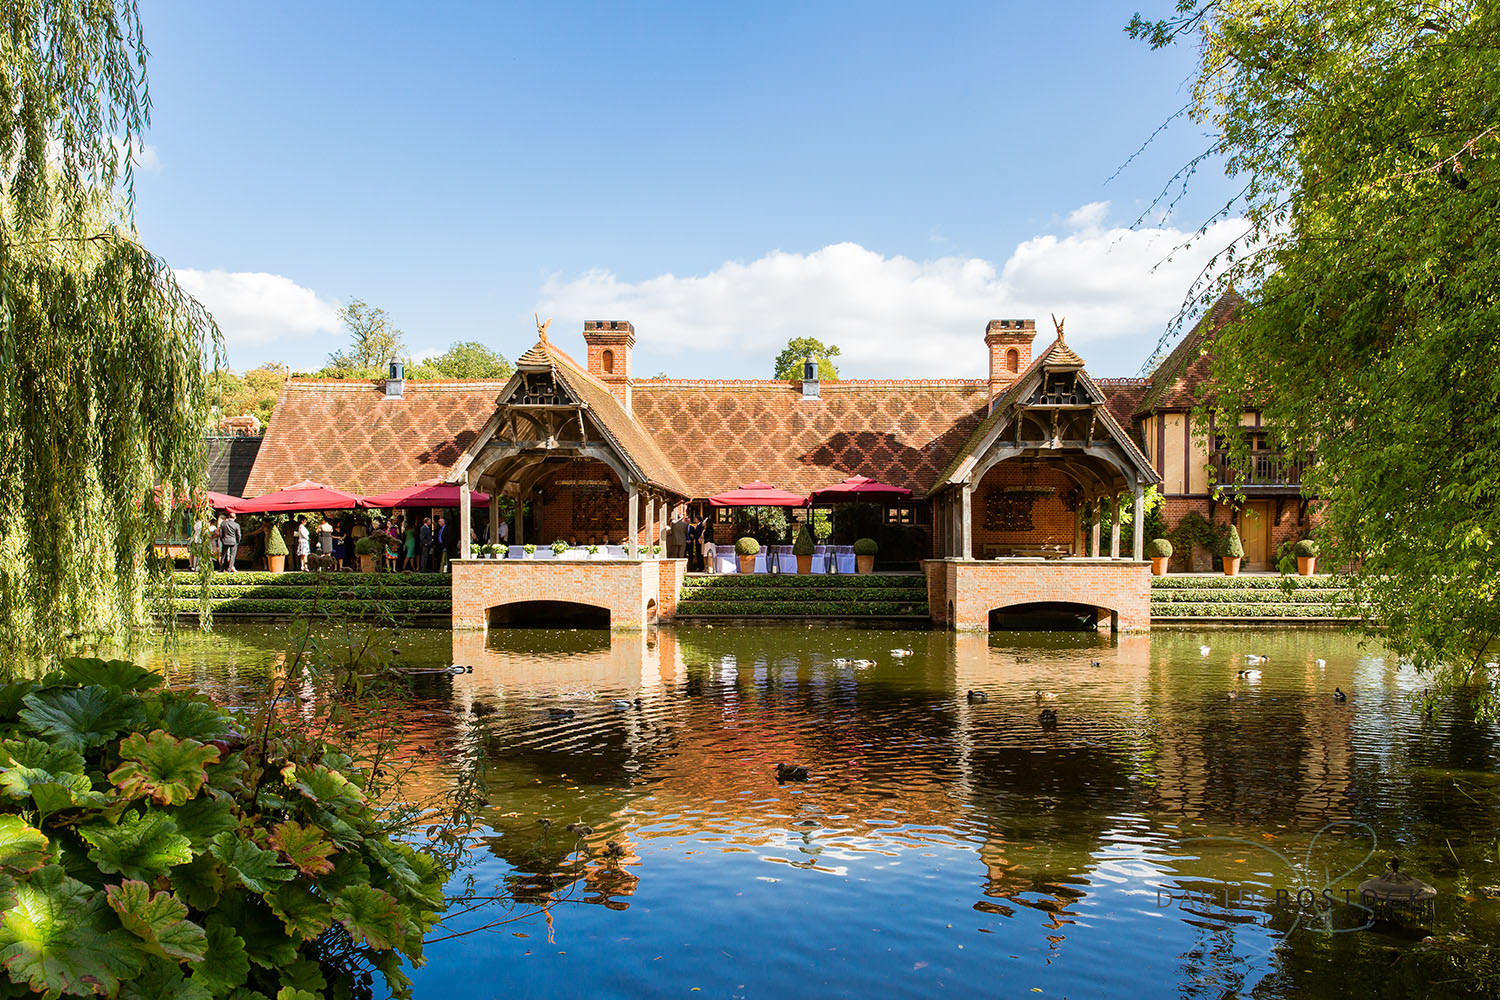 The Dairy Waddesdon wedding photo lakeside pavilion